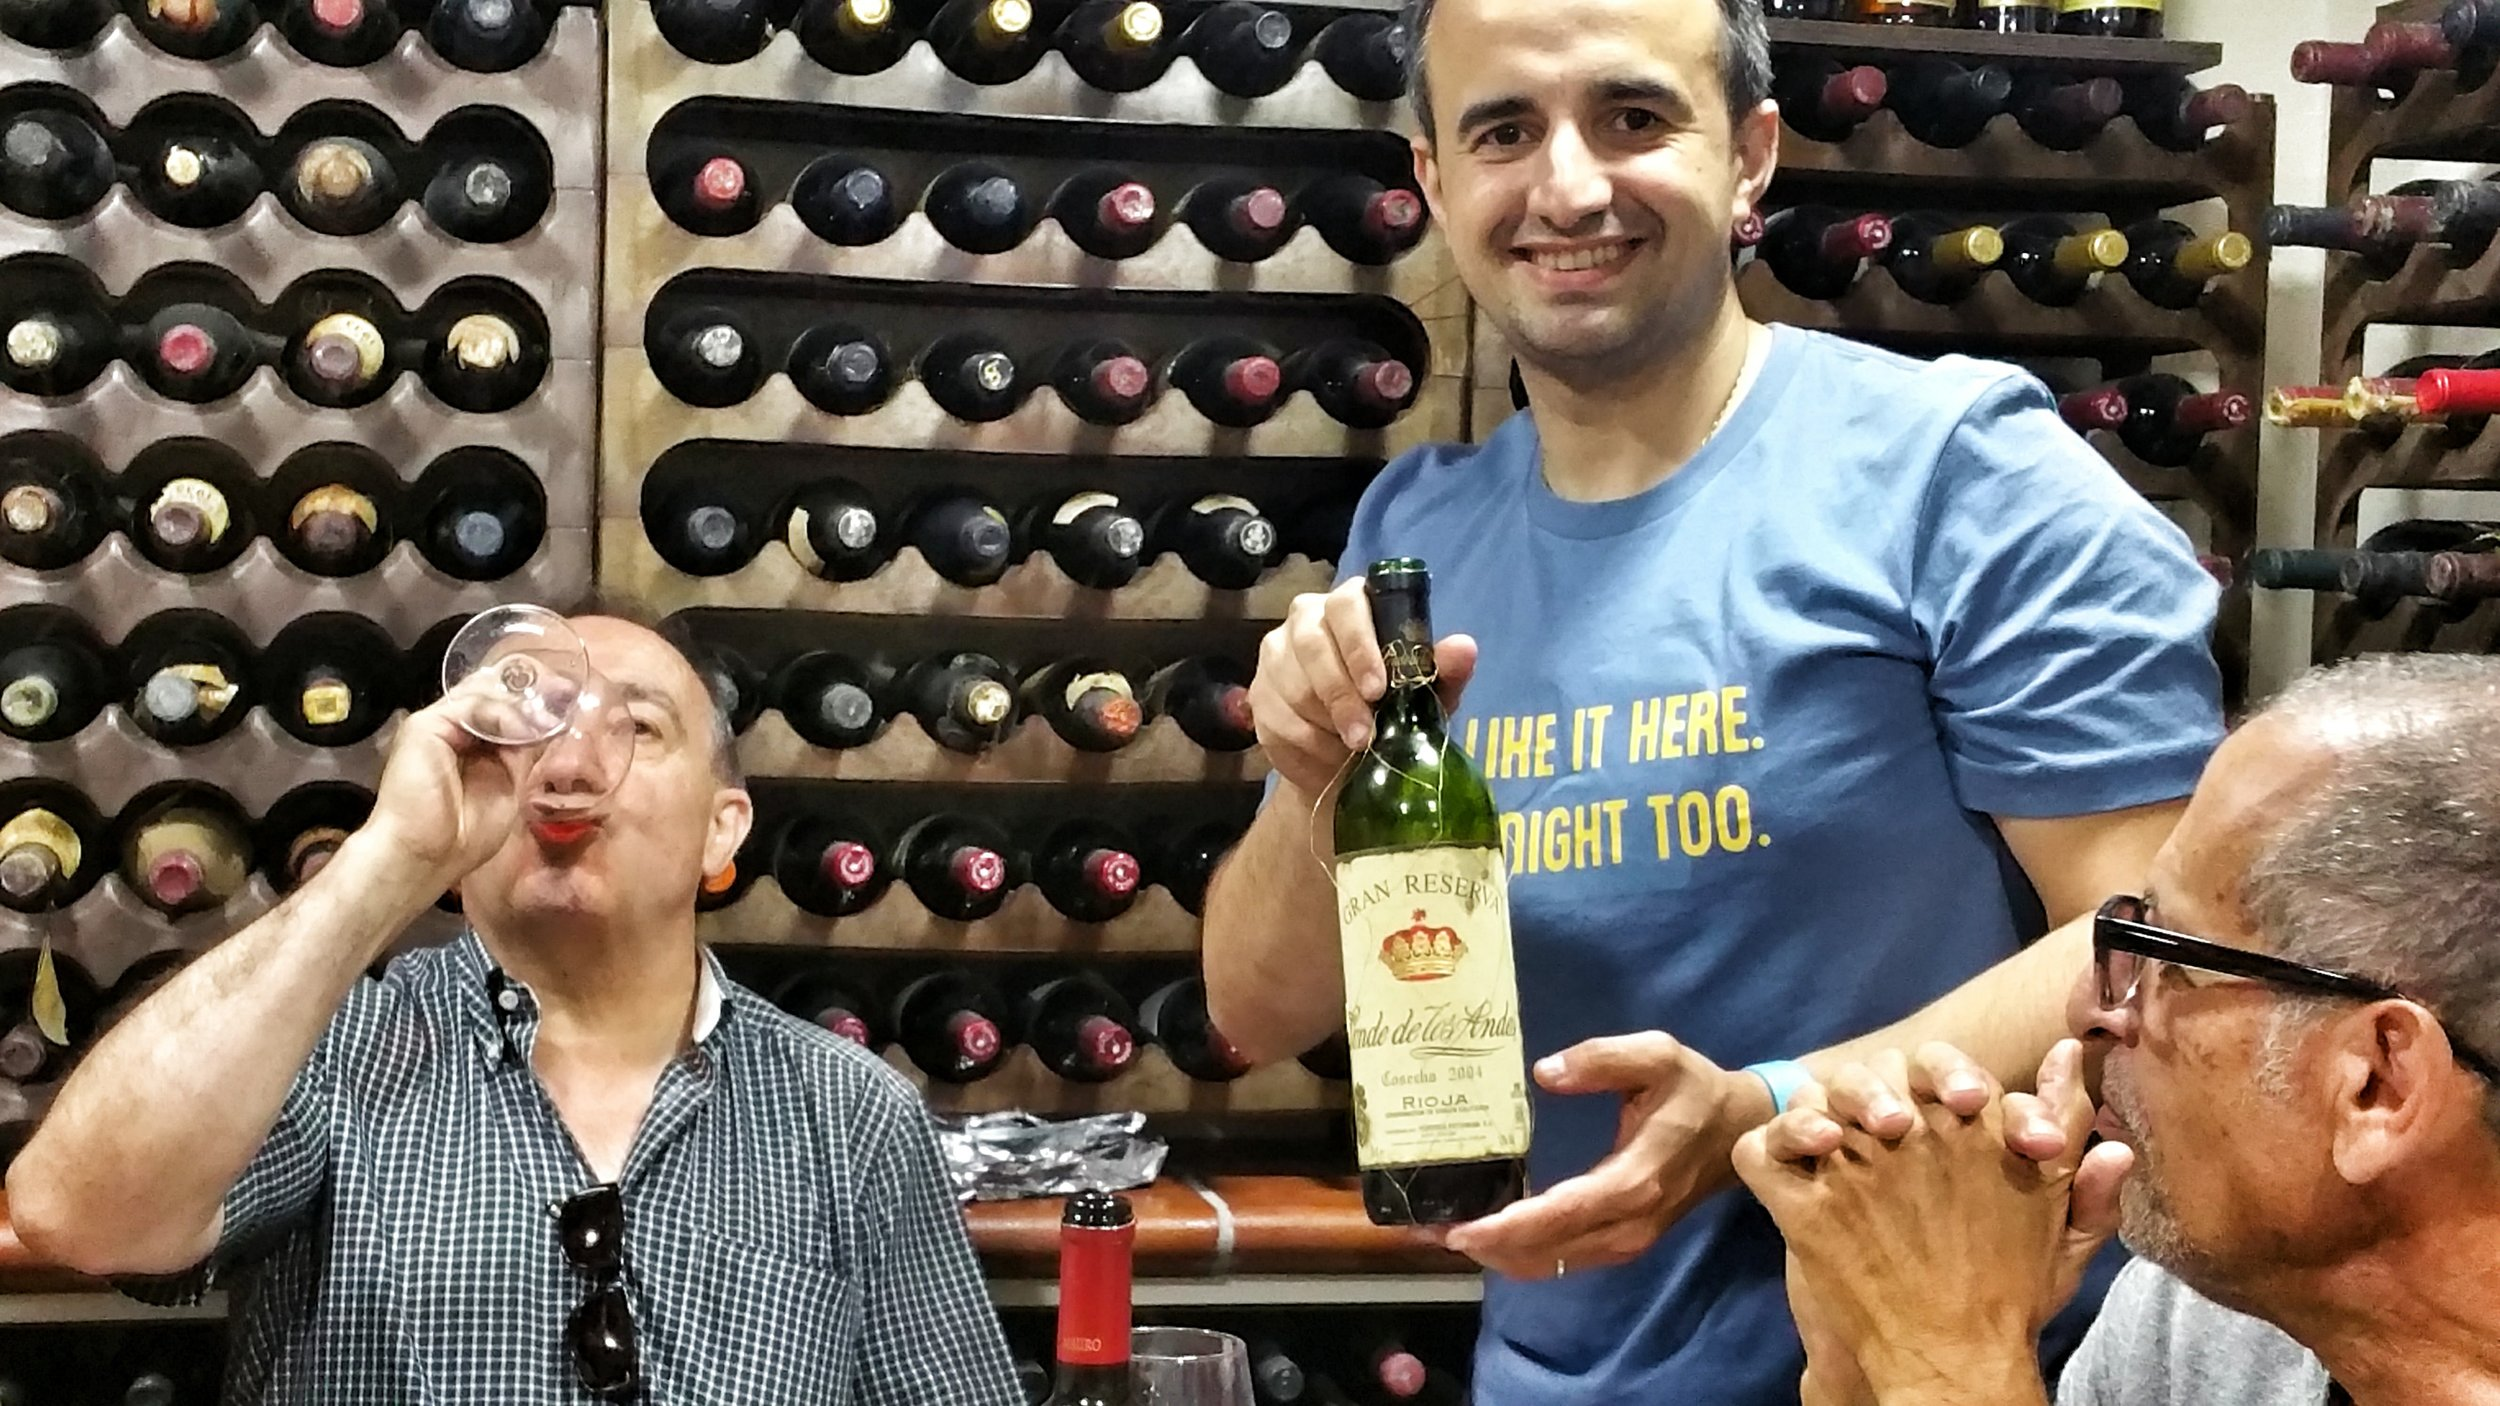 At the Chesa family wine cellar in Spain